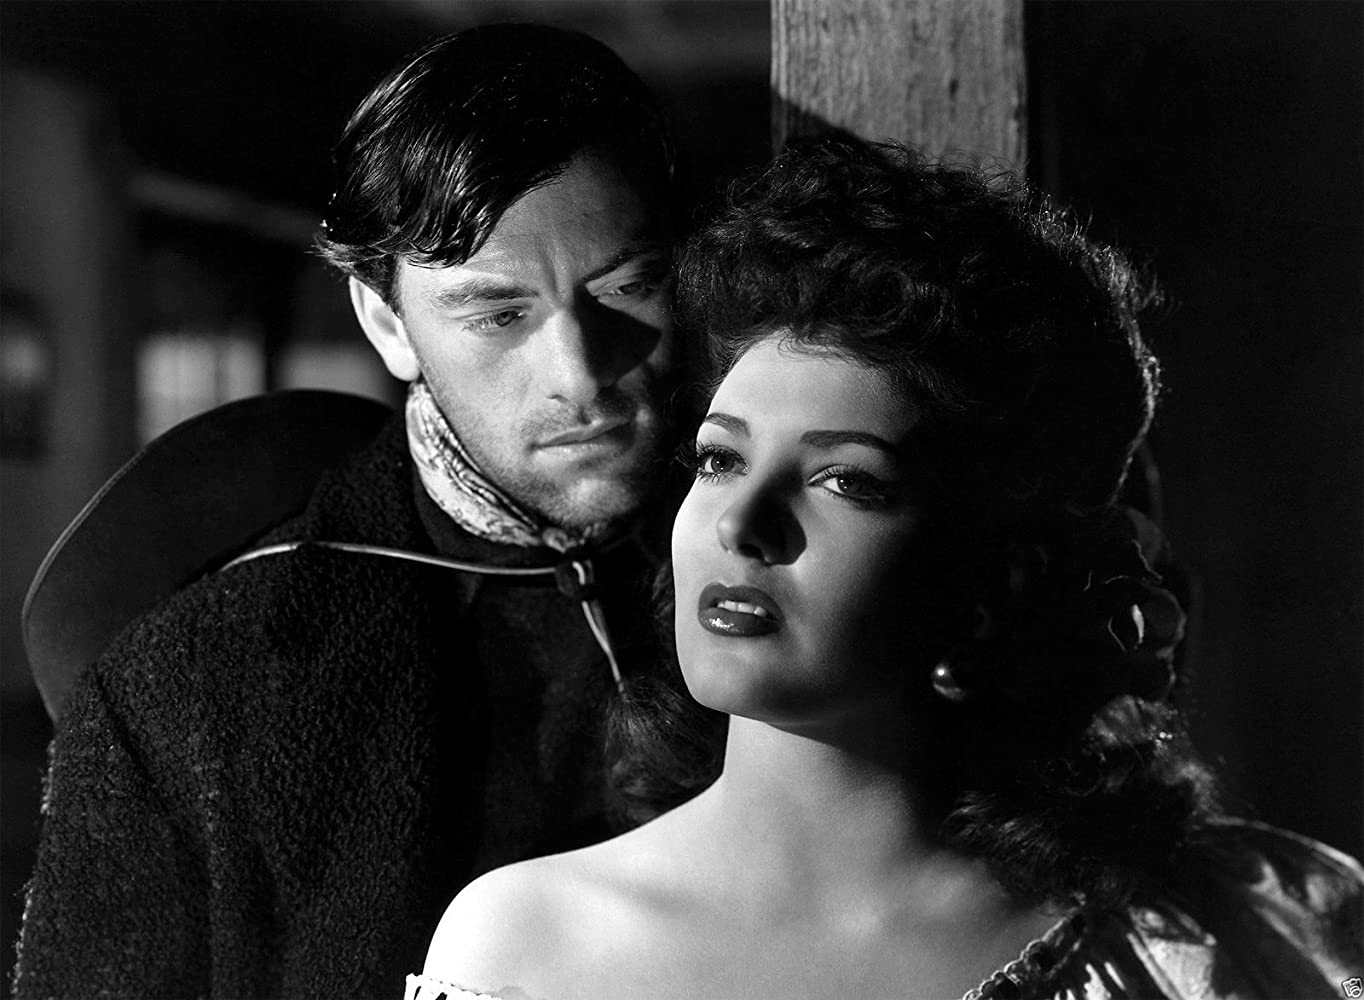 Linda Darnell and John Ireland in My Darling Clementine (1946)